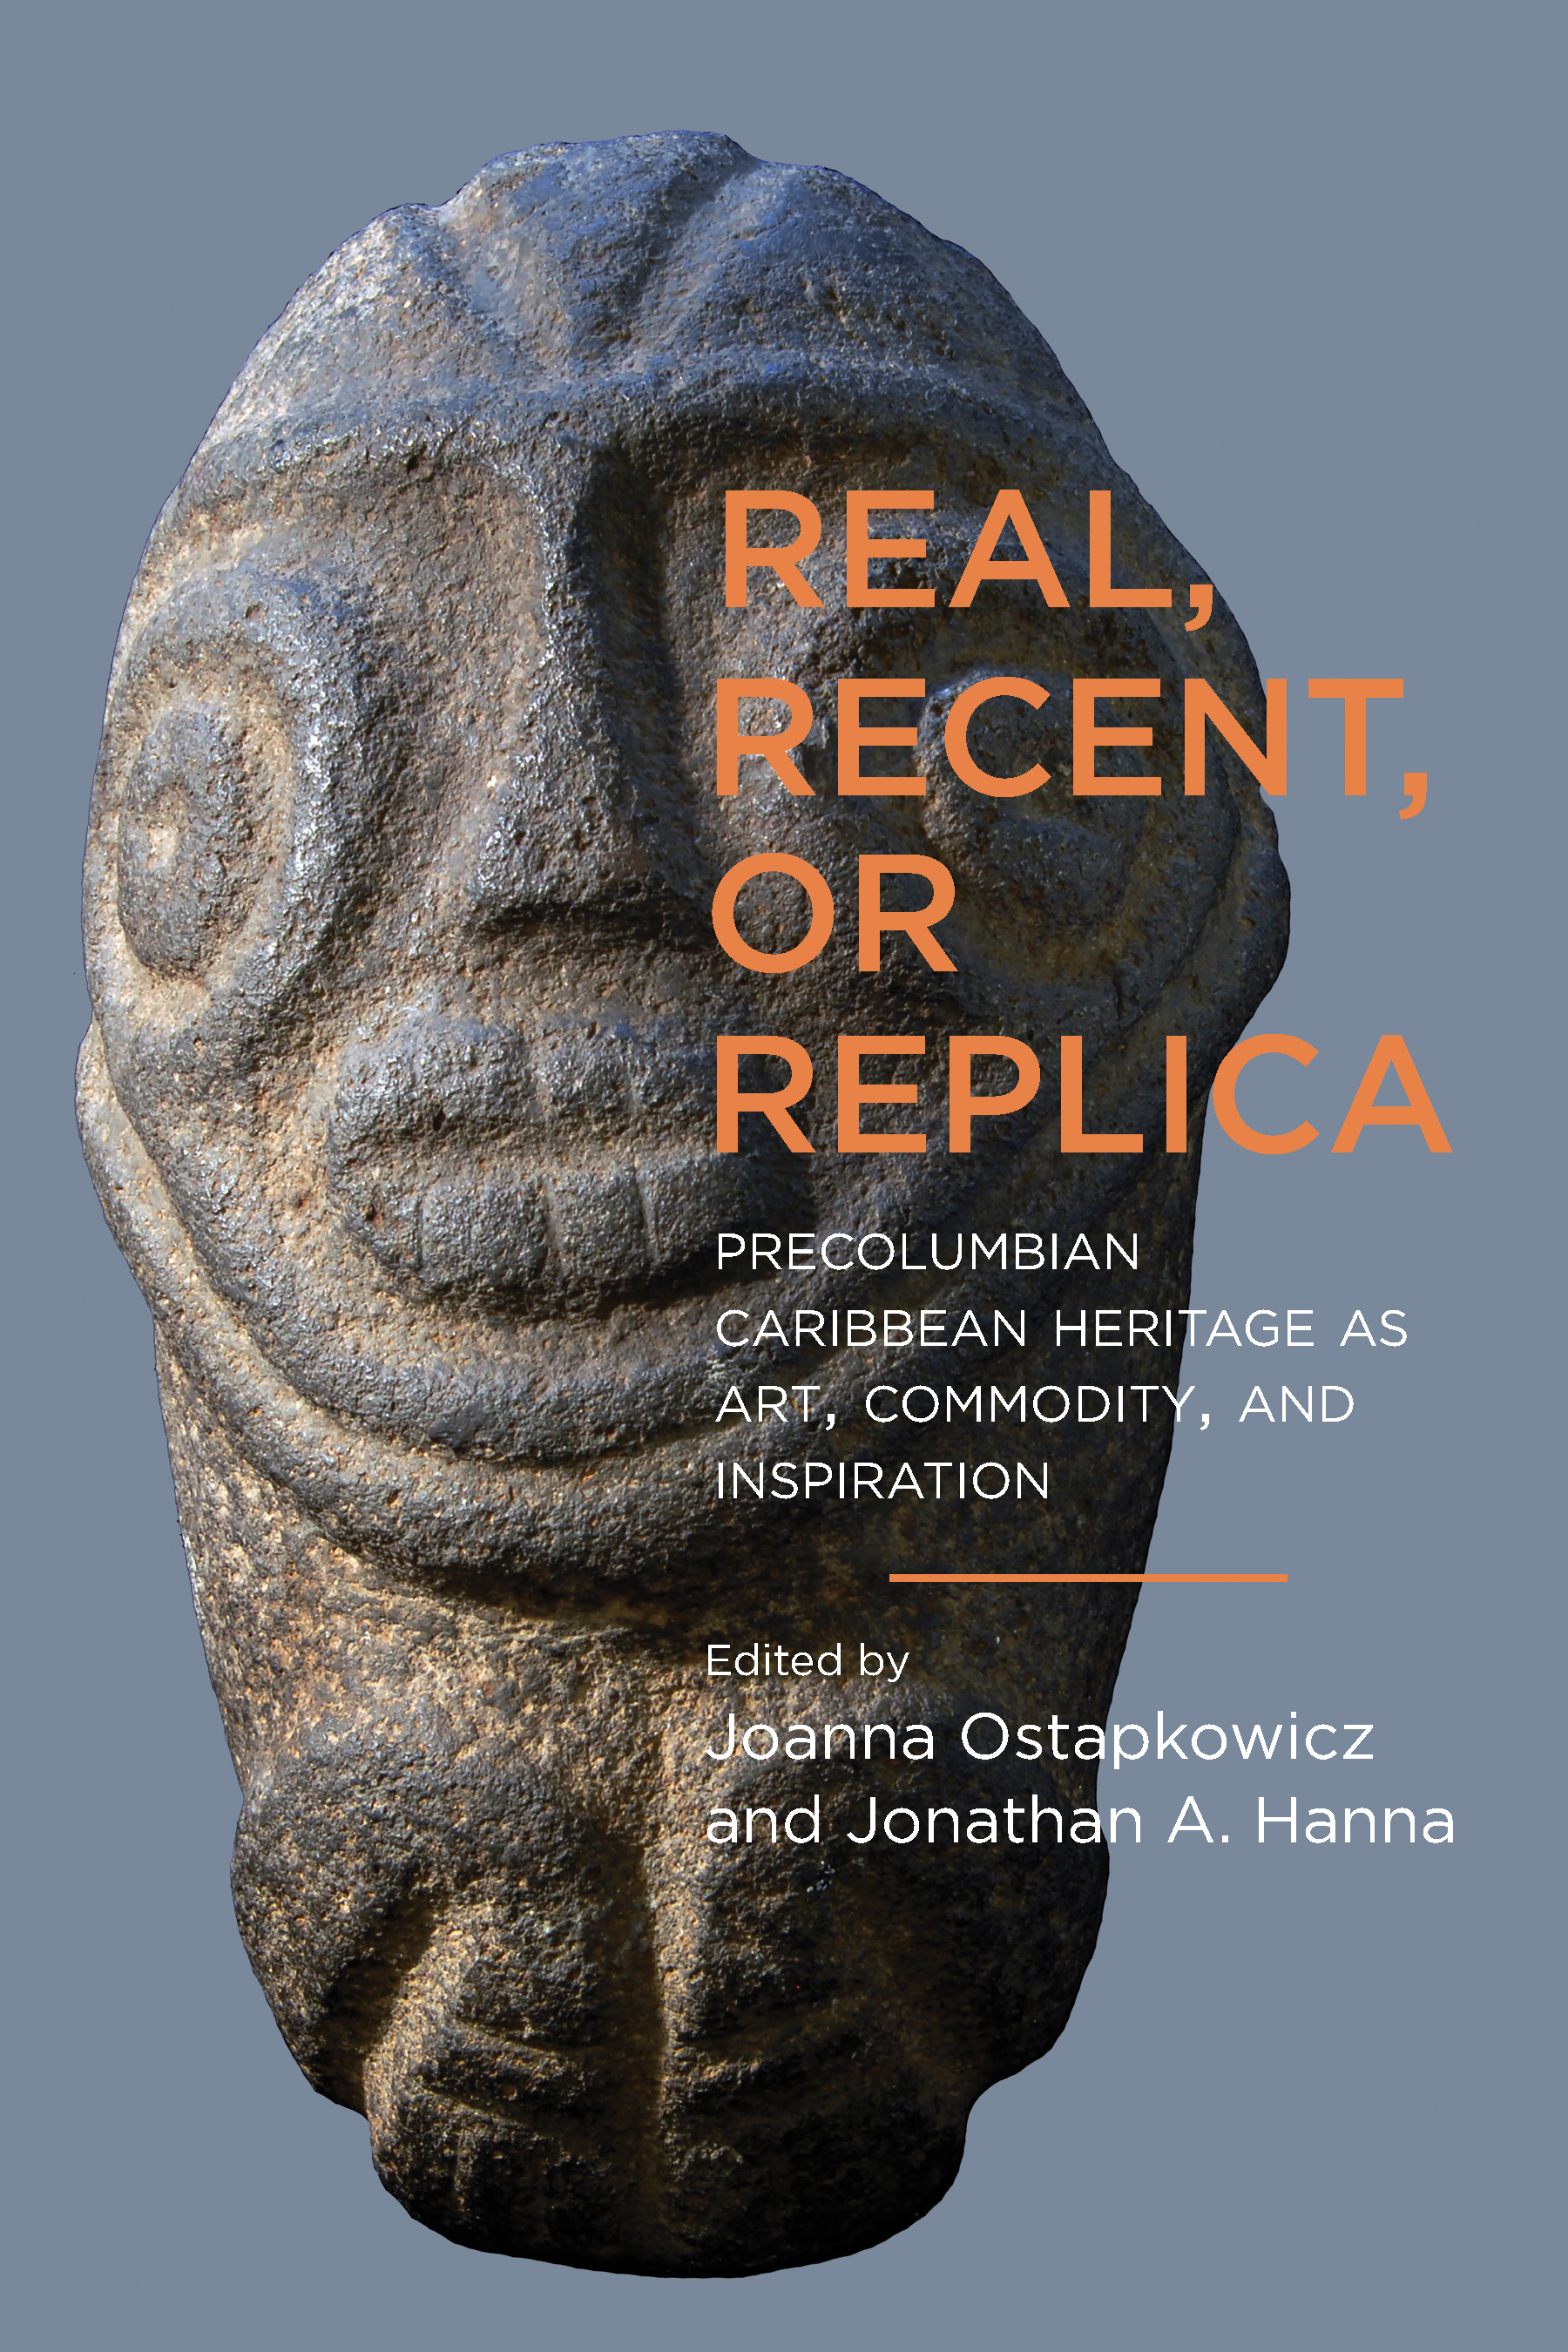 Real, Recent, or Replica: Precolumbian Caribbean Heritage as Art, Commodity, and Inspiration